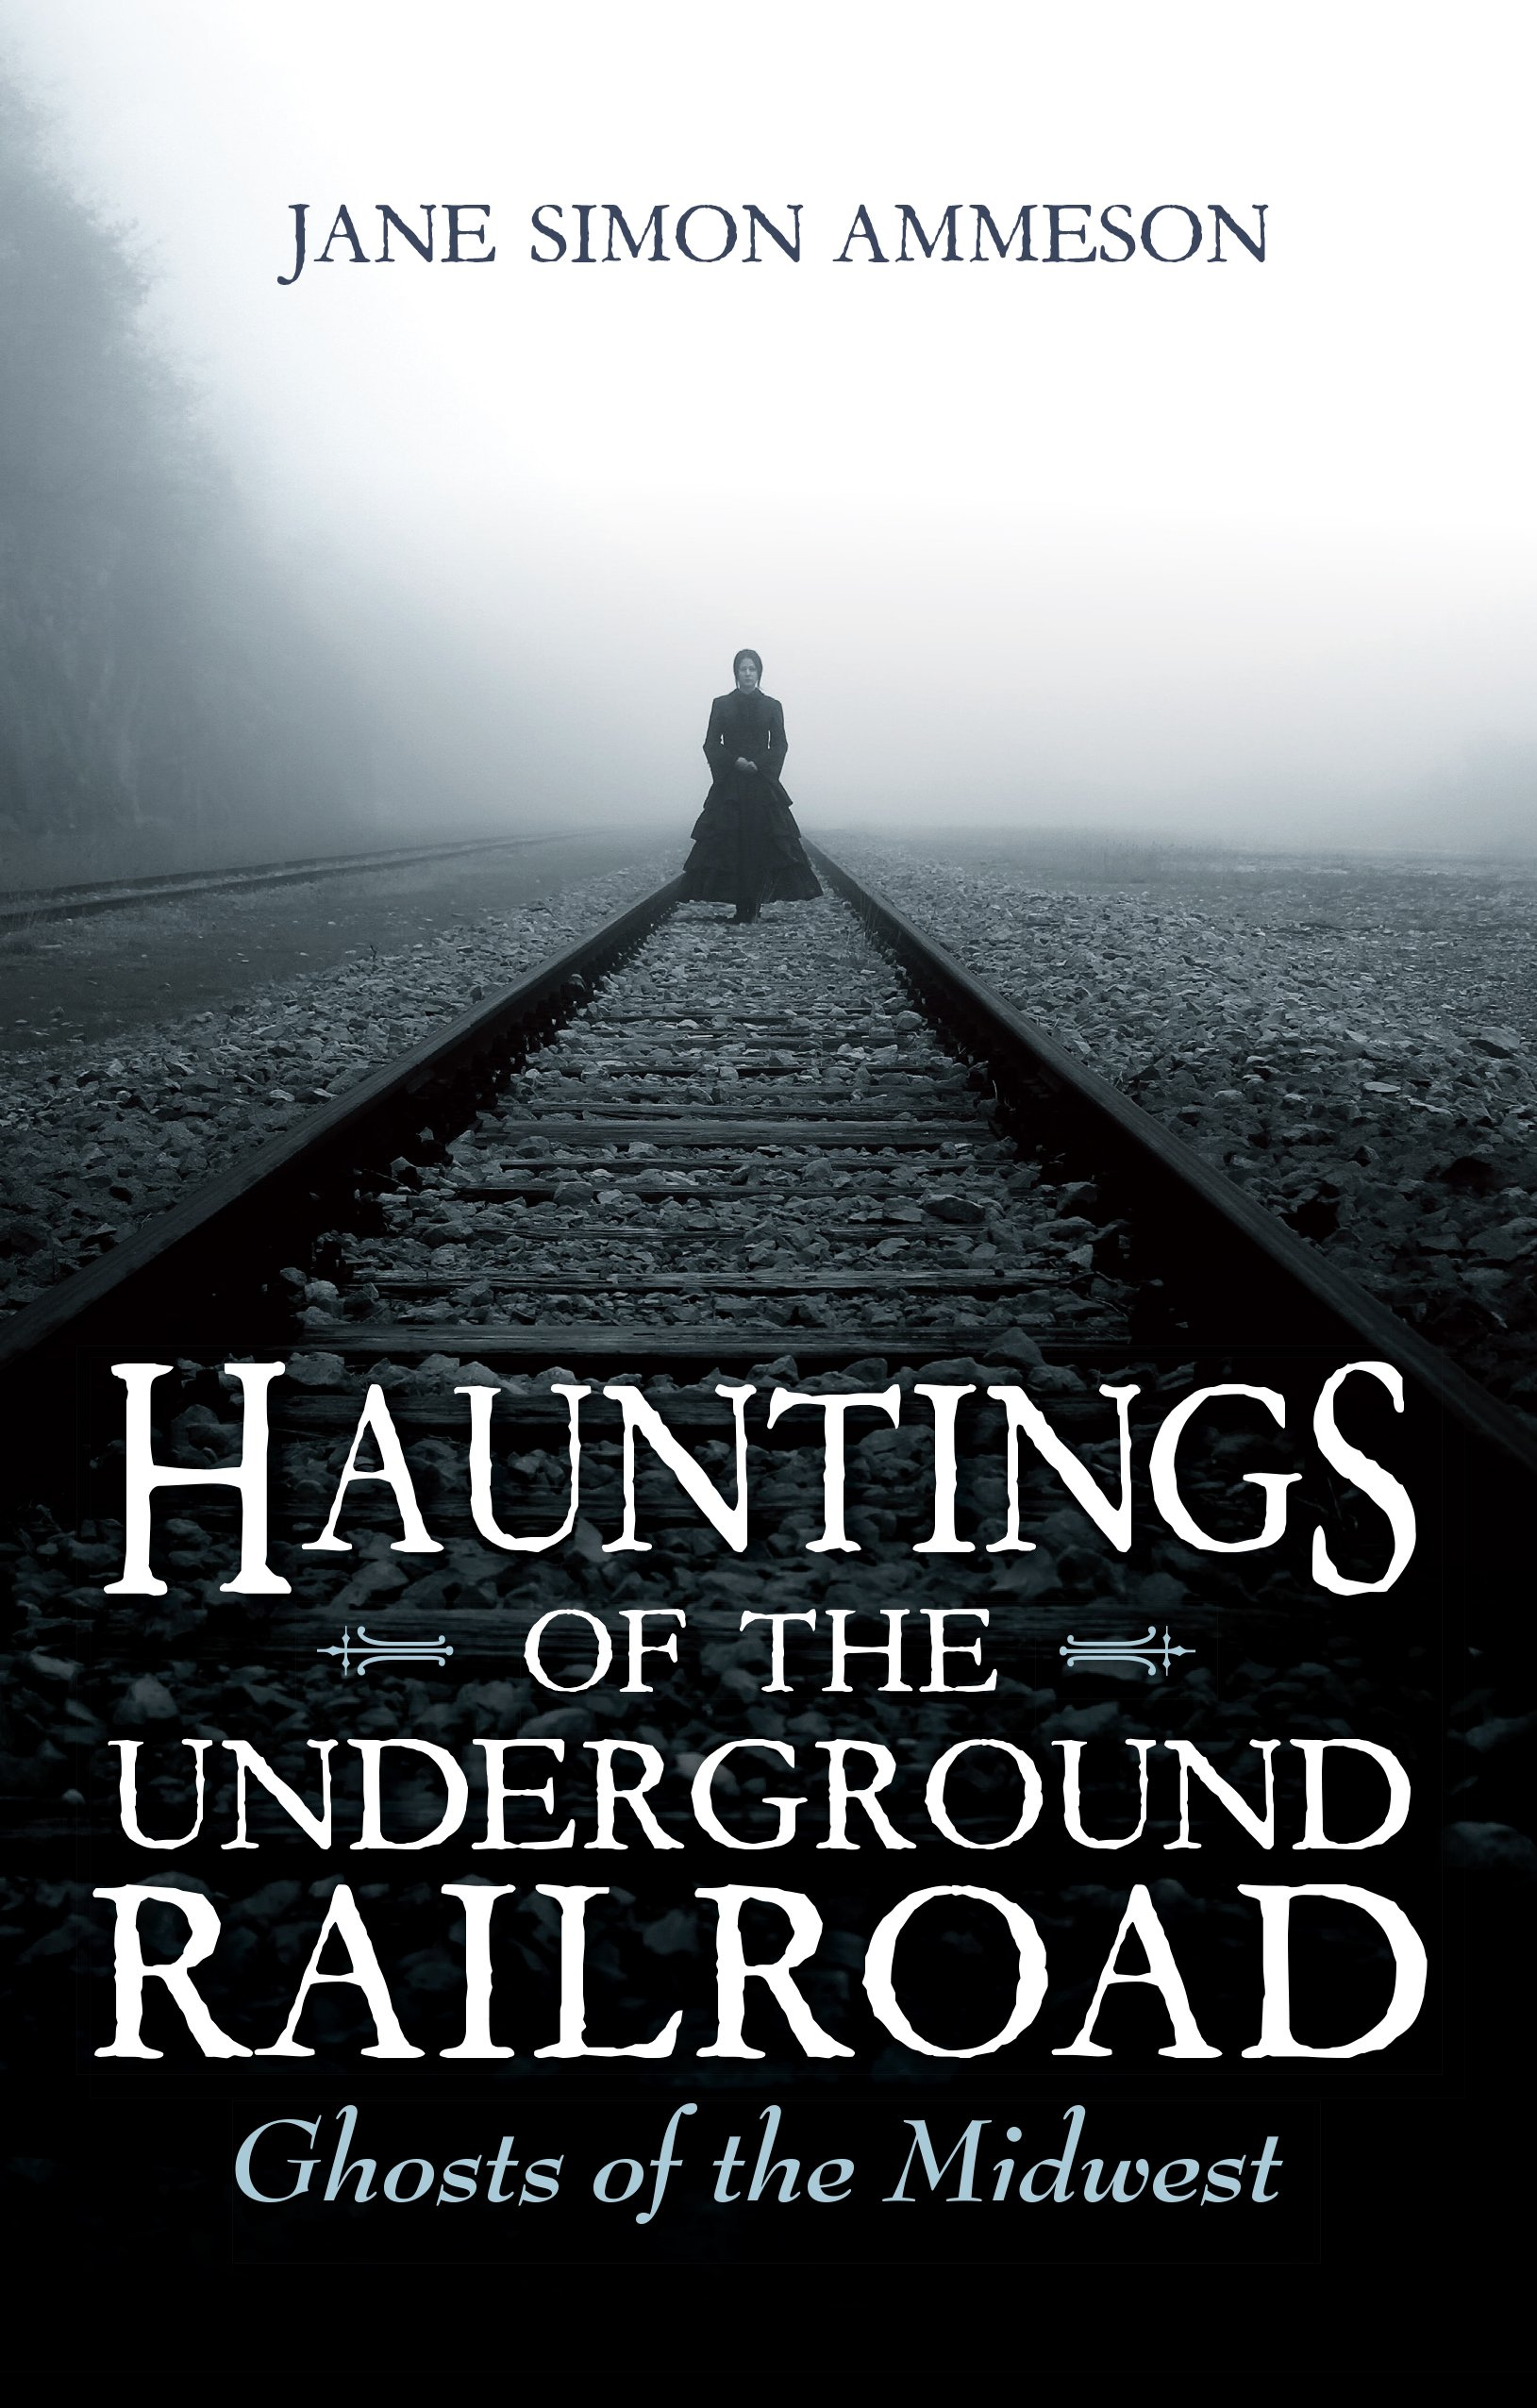 Download Hauntings of the Underground Railroad: Ghosts of the Midwest PDF